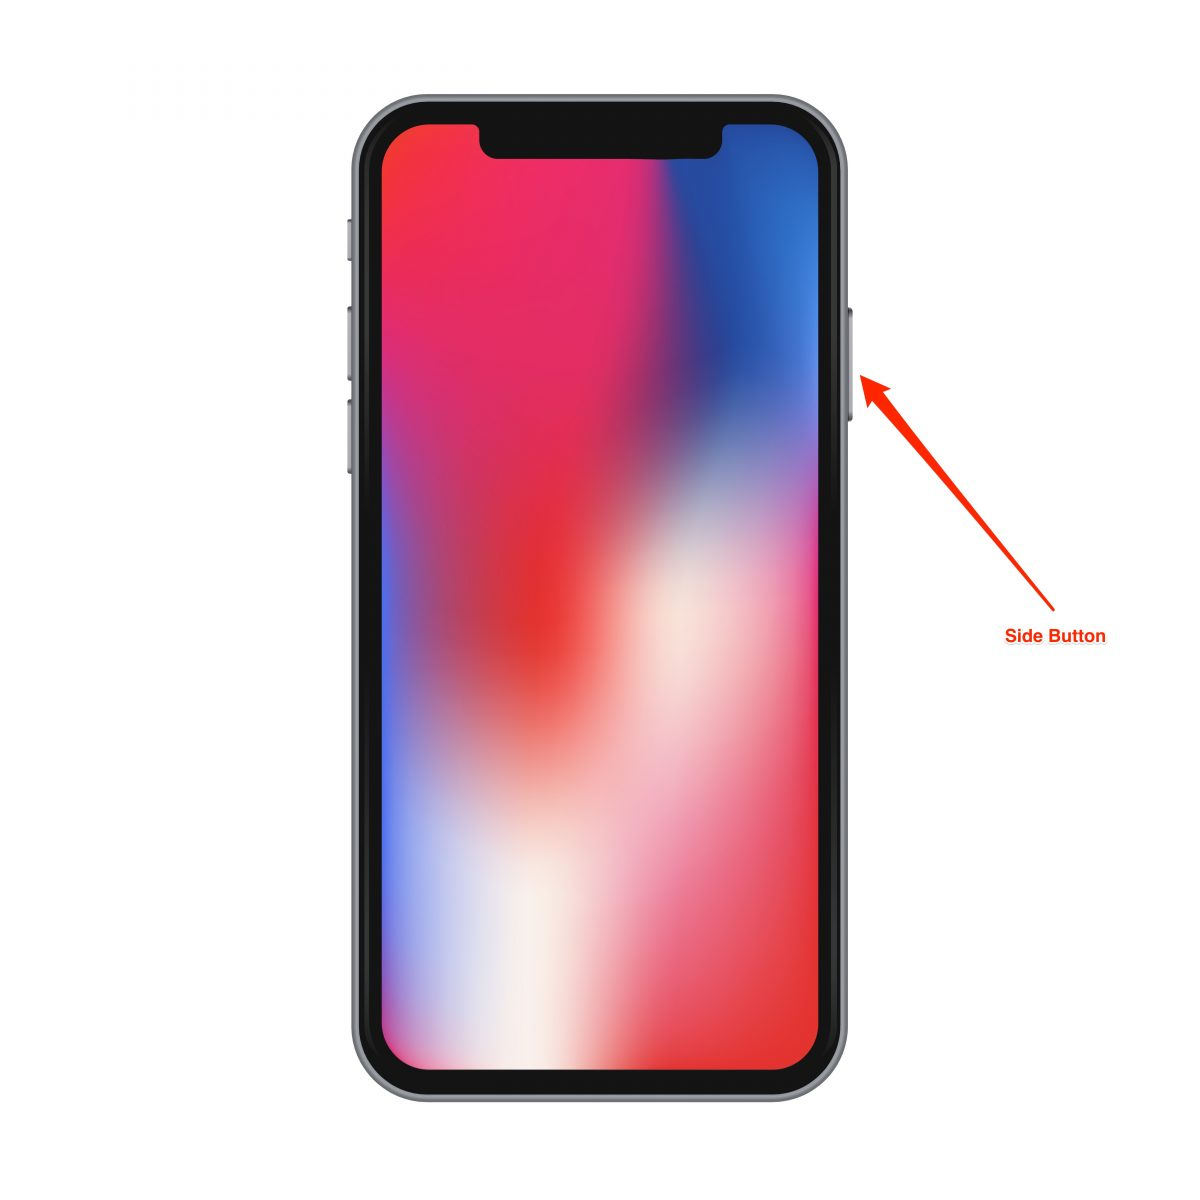 hard reboot the iphone x - step 3